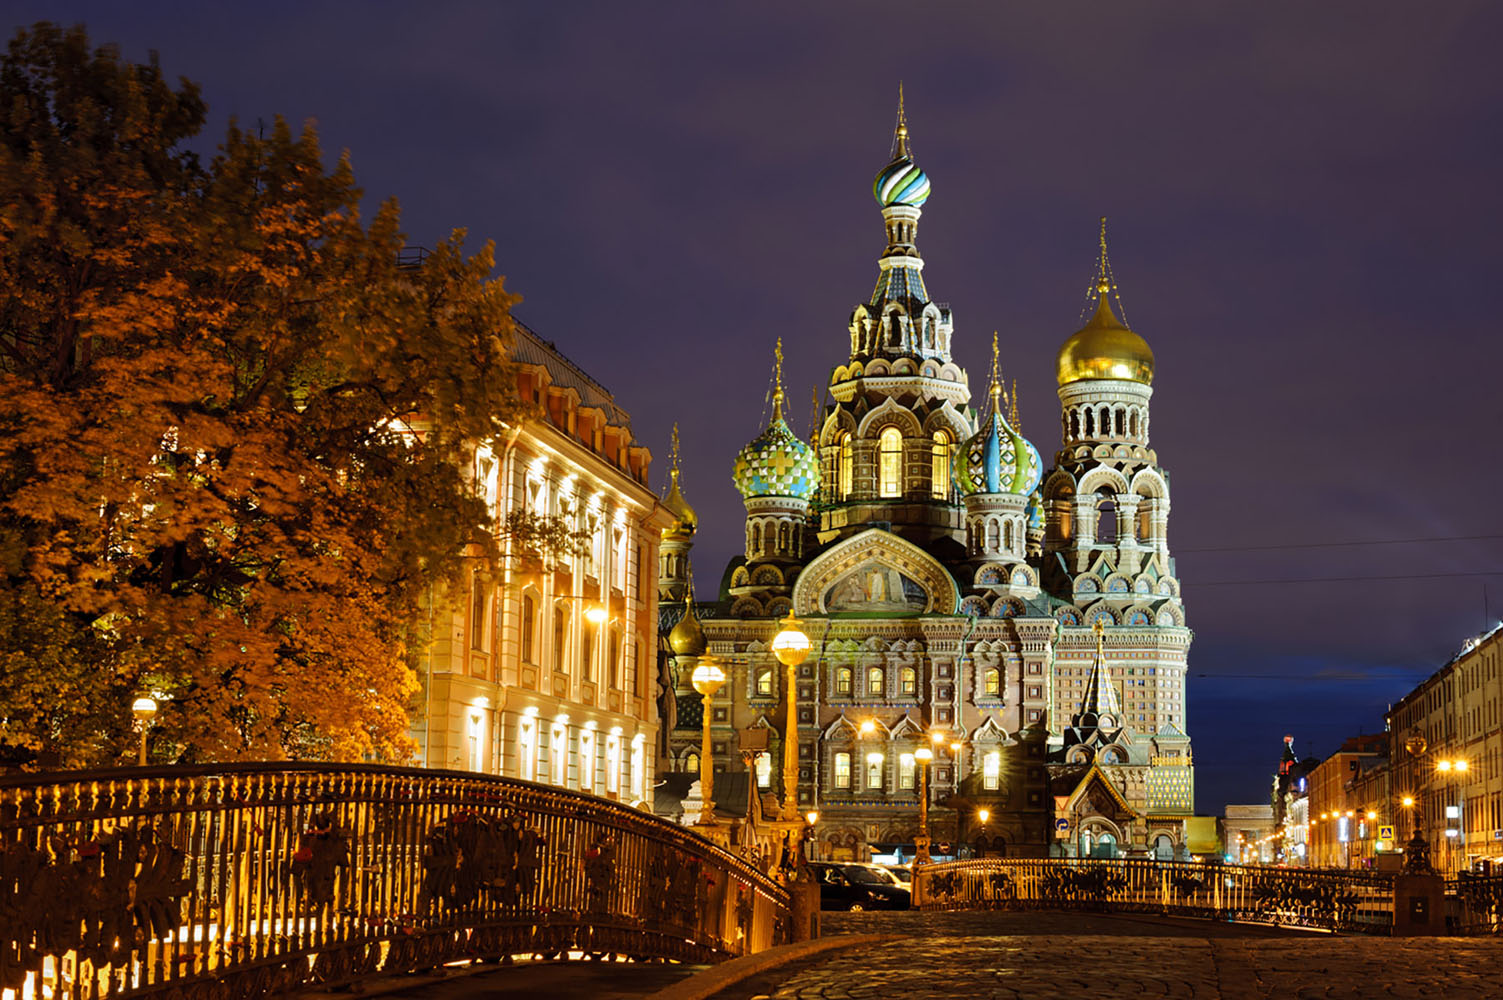 Extend your world journey to the beautiful St. Petersburg, Russia.